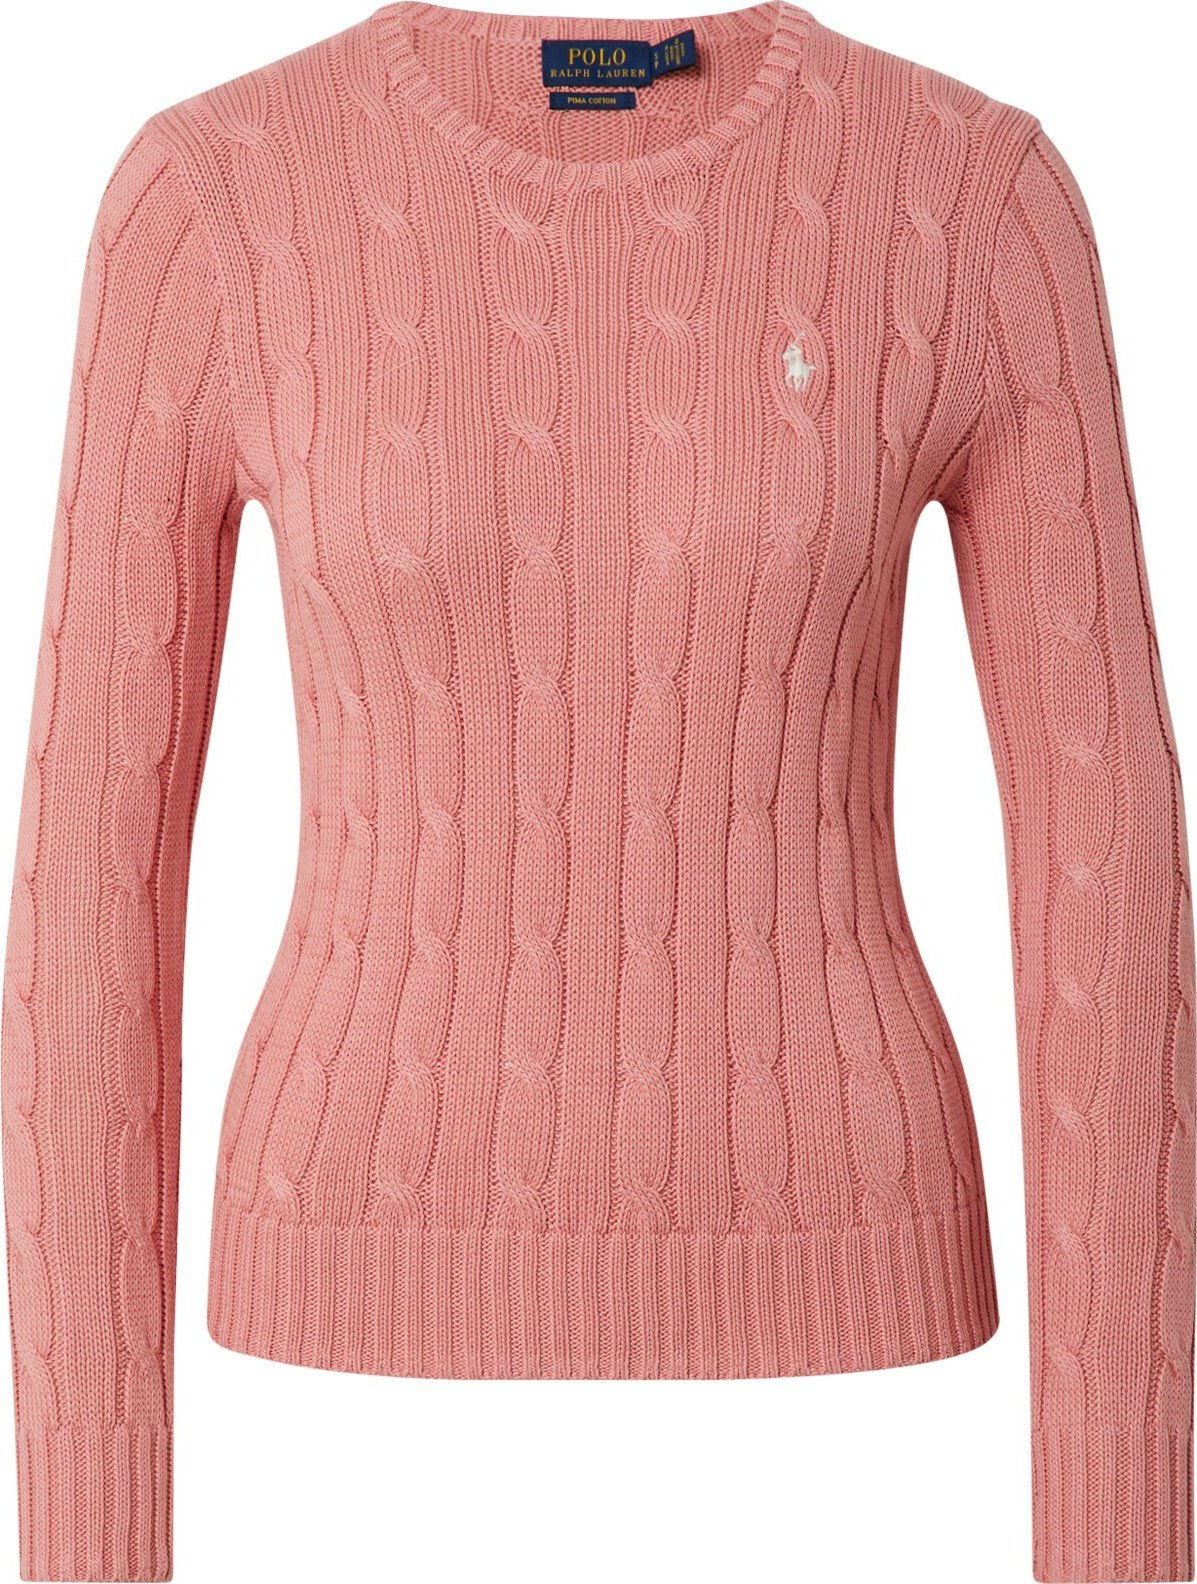 POLO RALPH LAUREN Svetr JULIANNA-CLASSICLONG SLEEVE-SWEATER růže Polo Ralph Lauren